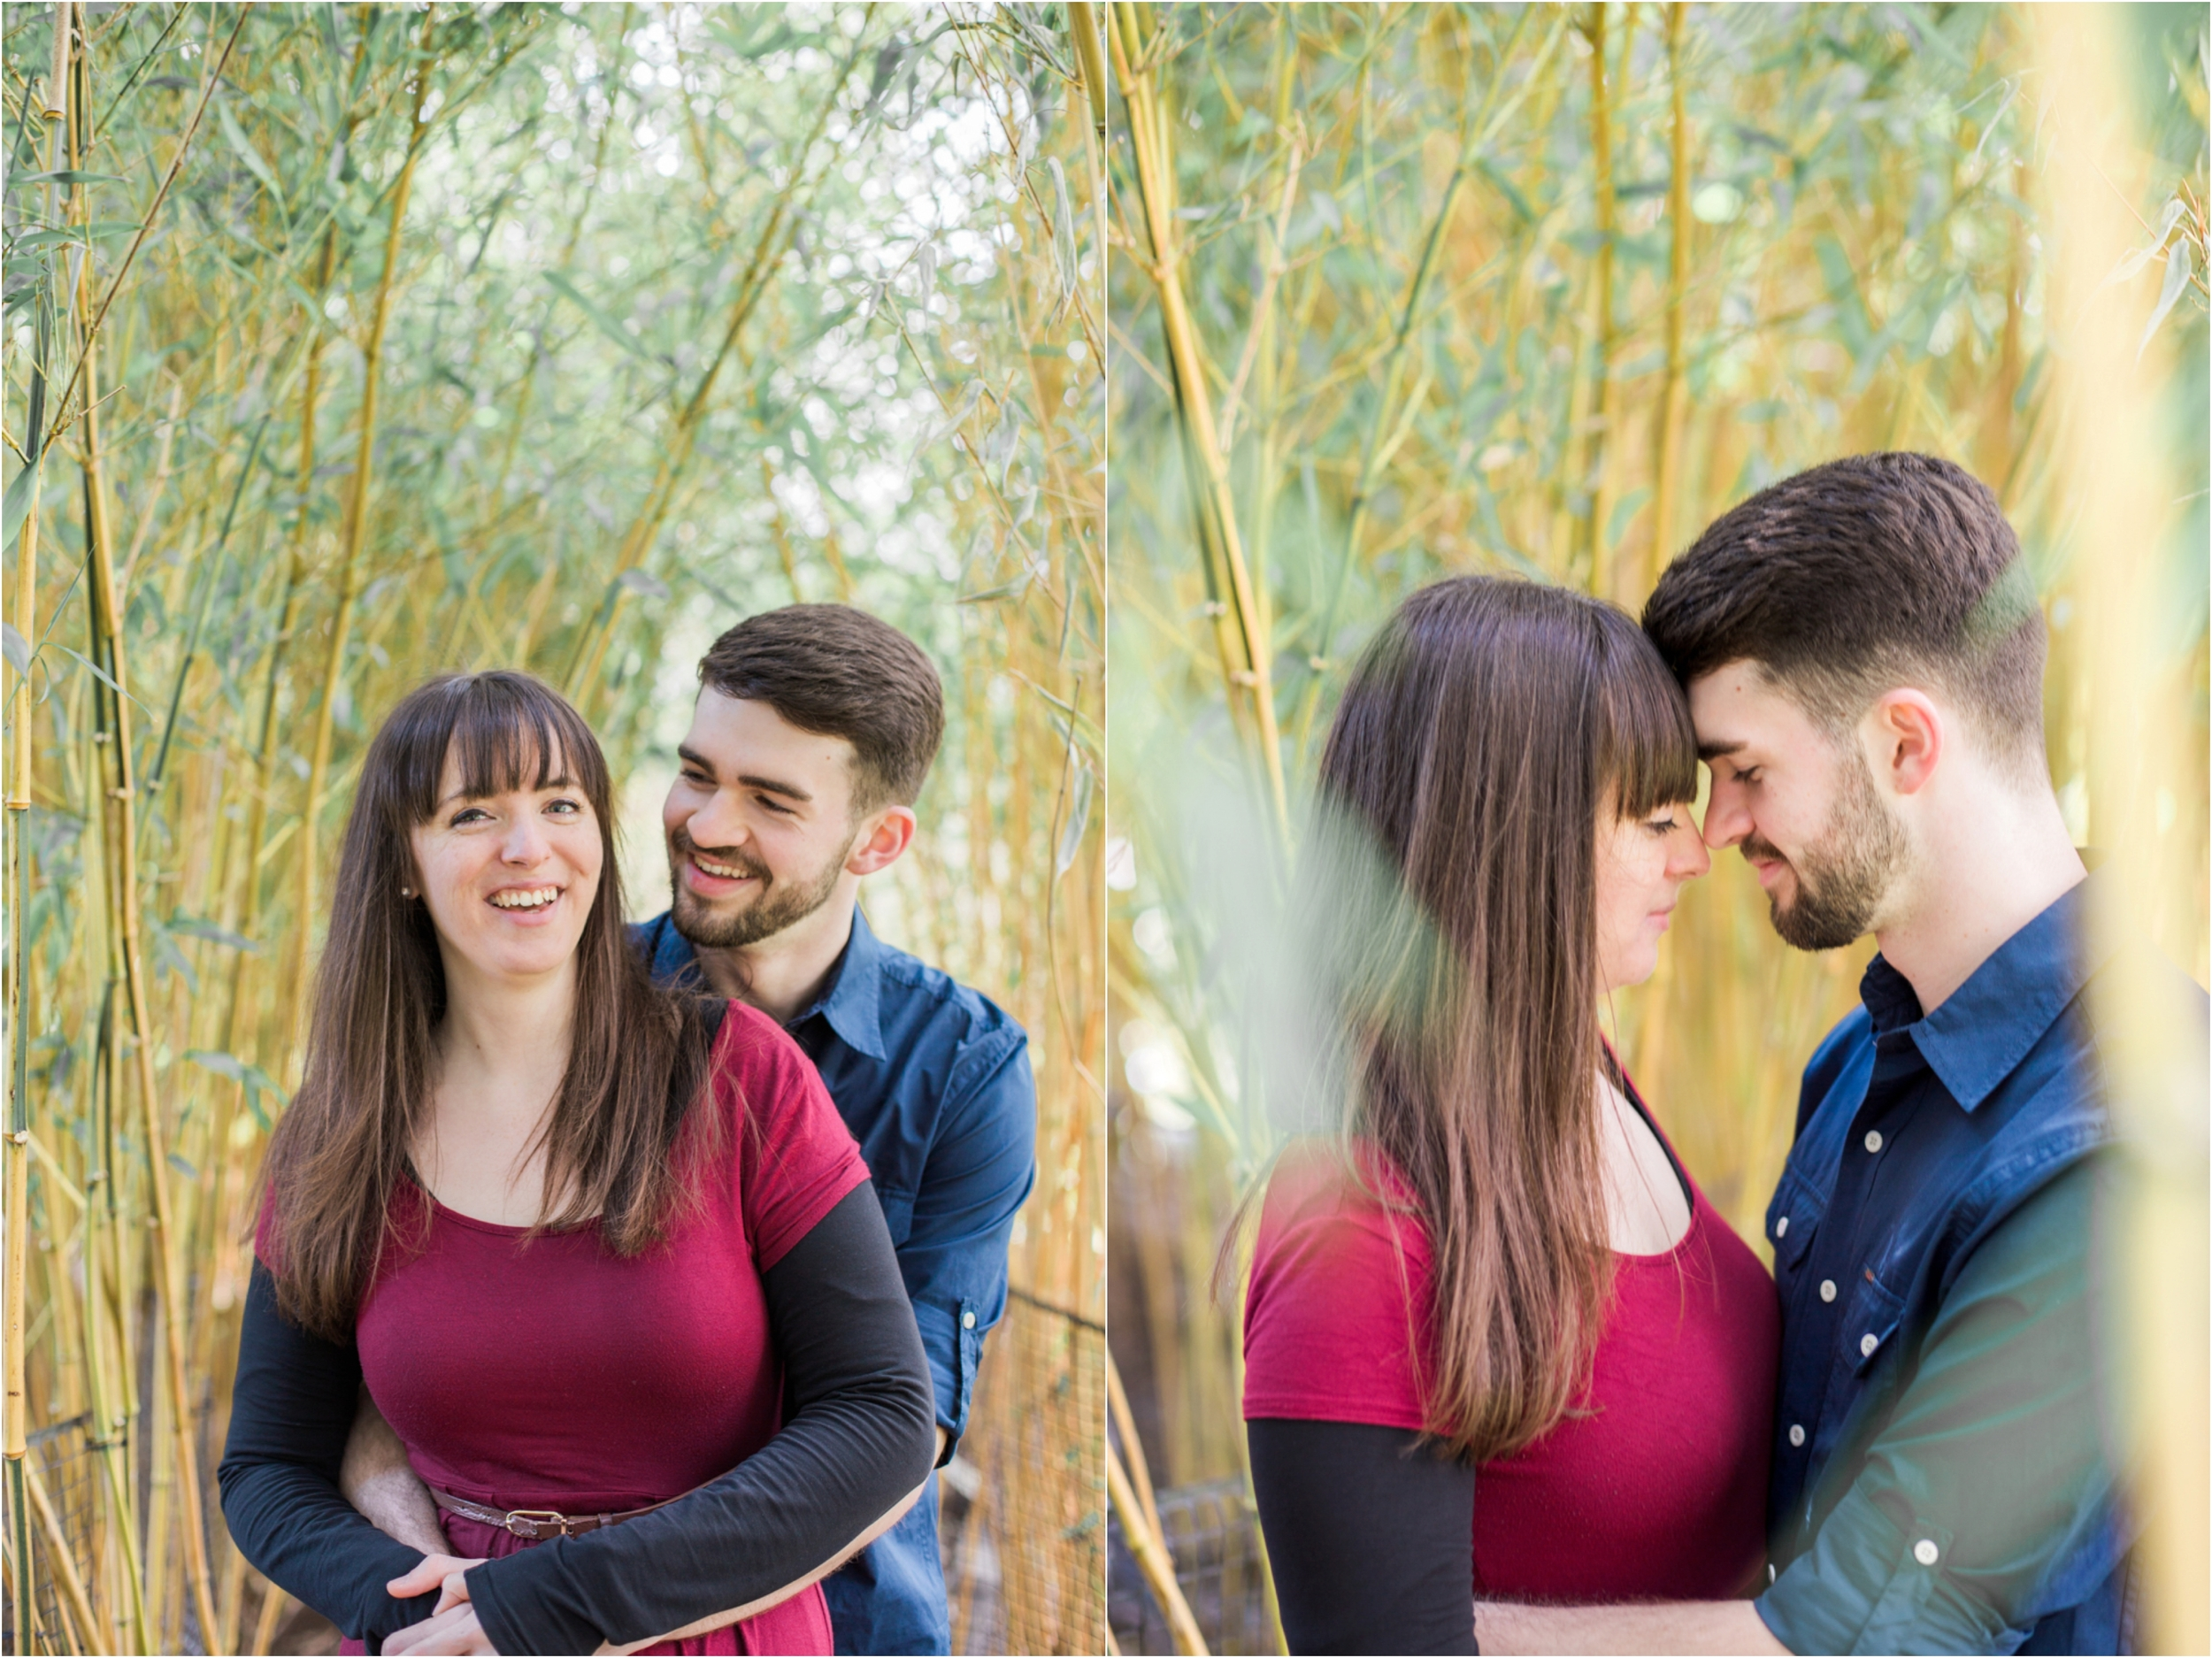 Sophie Evans Photography, Alice & Nathanael Botanical Gardens Engagement Shoot. Warwickshire Wedding Photographer (21).jpg